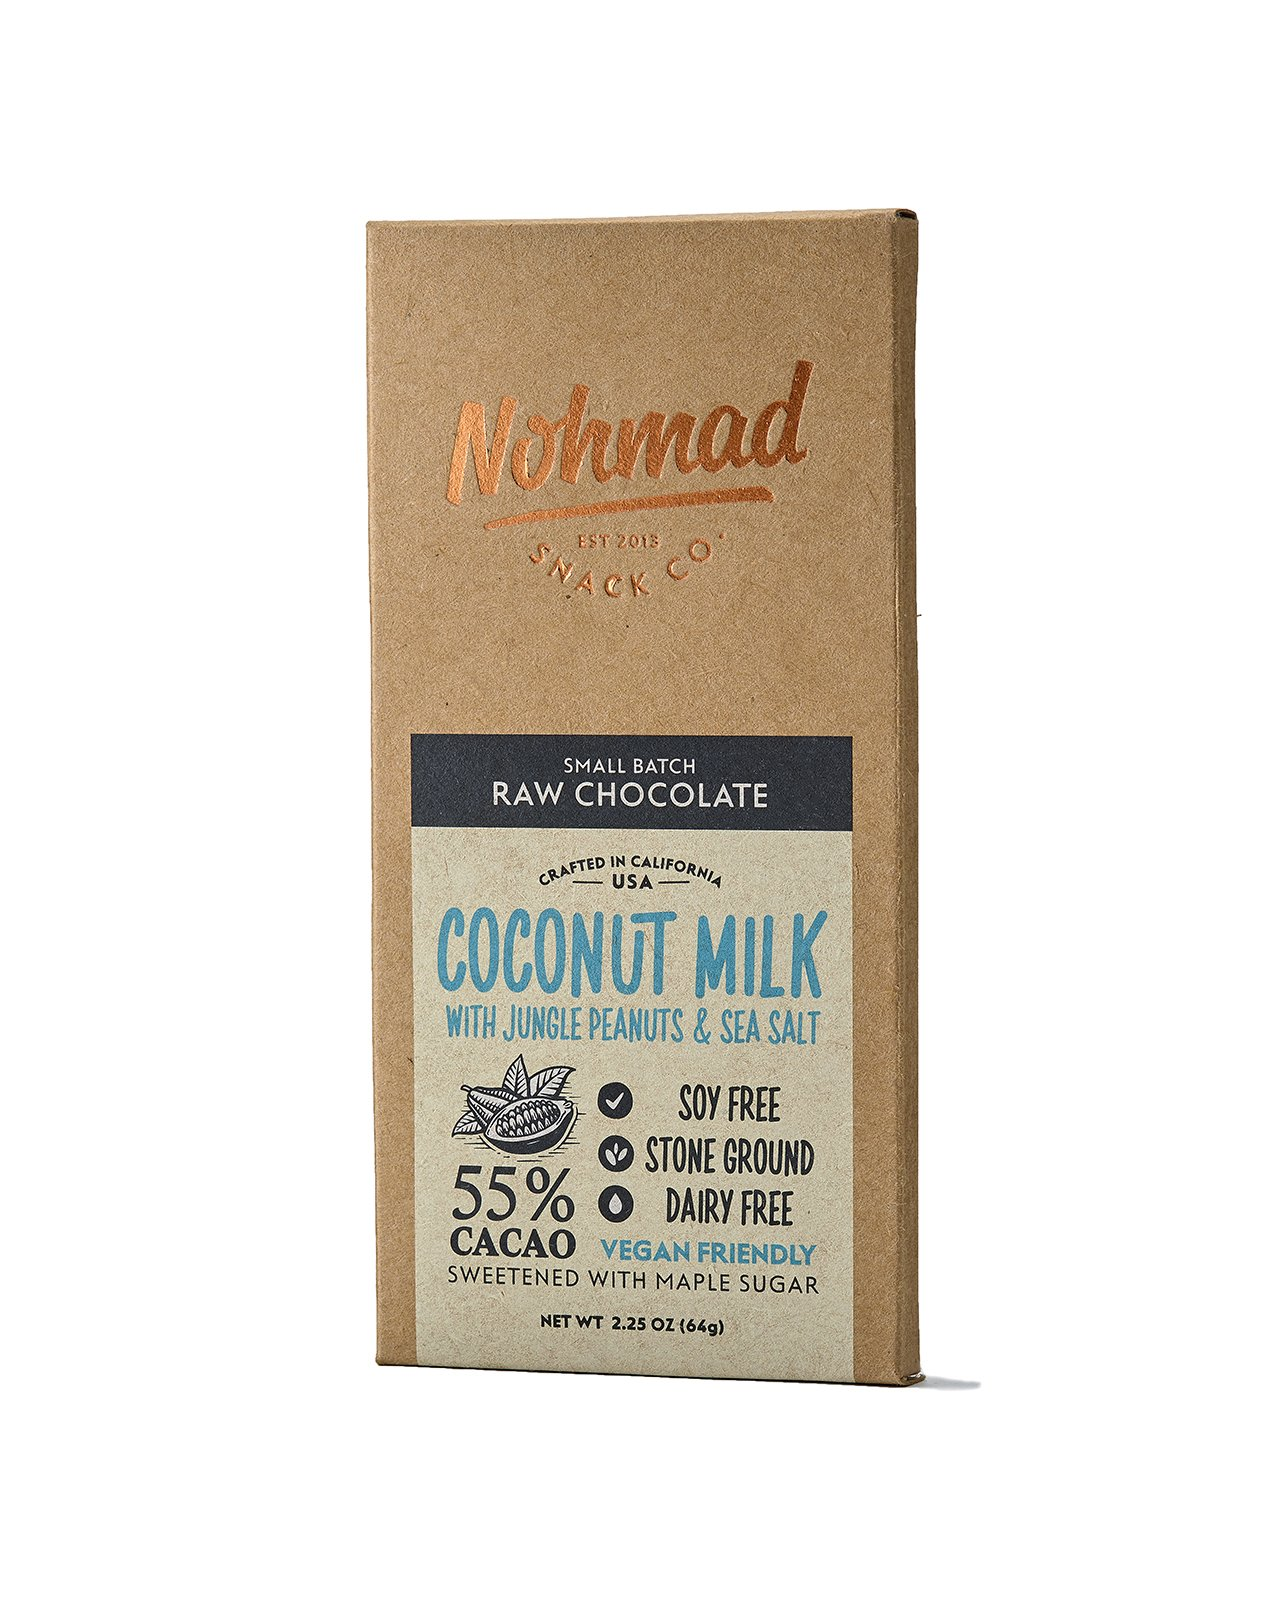 Nohmad Snack Co - Raw Chocolate - Coconut Milk w/Jungle Peanuts & Sea Salt - 55% Cacao - Vegan Friendly (2 pack) by Nohmad Snack Co